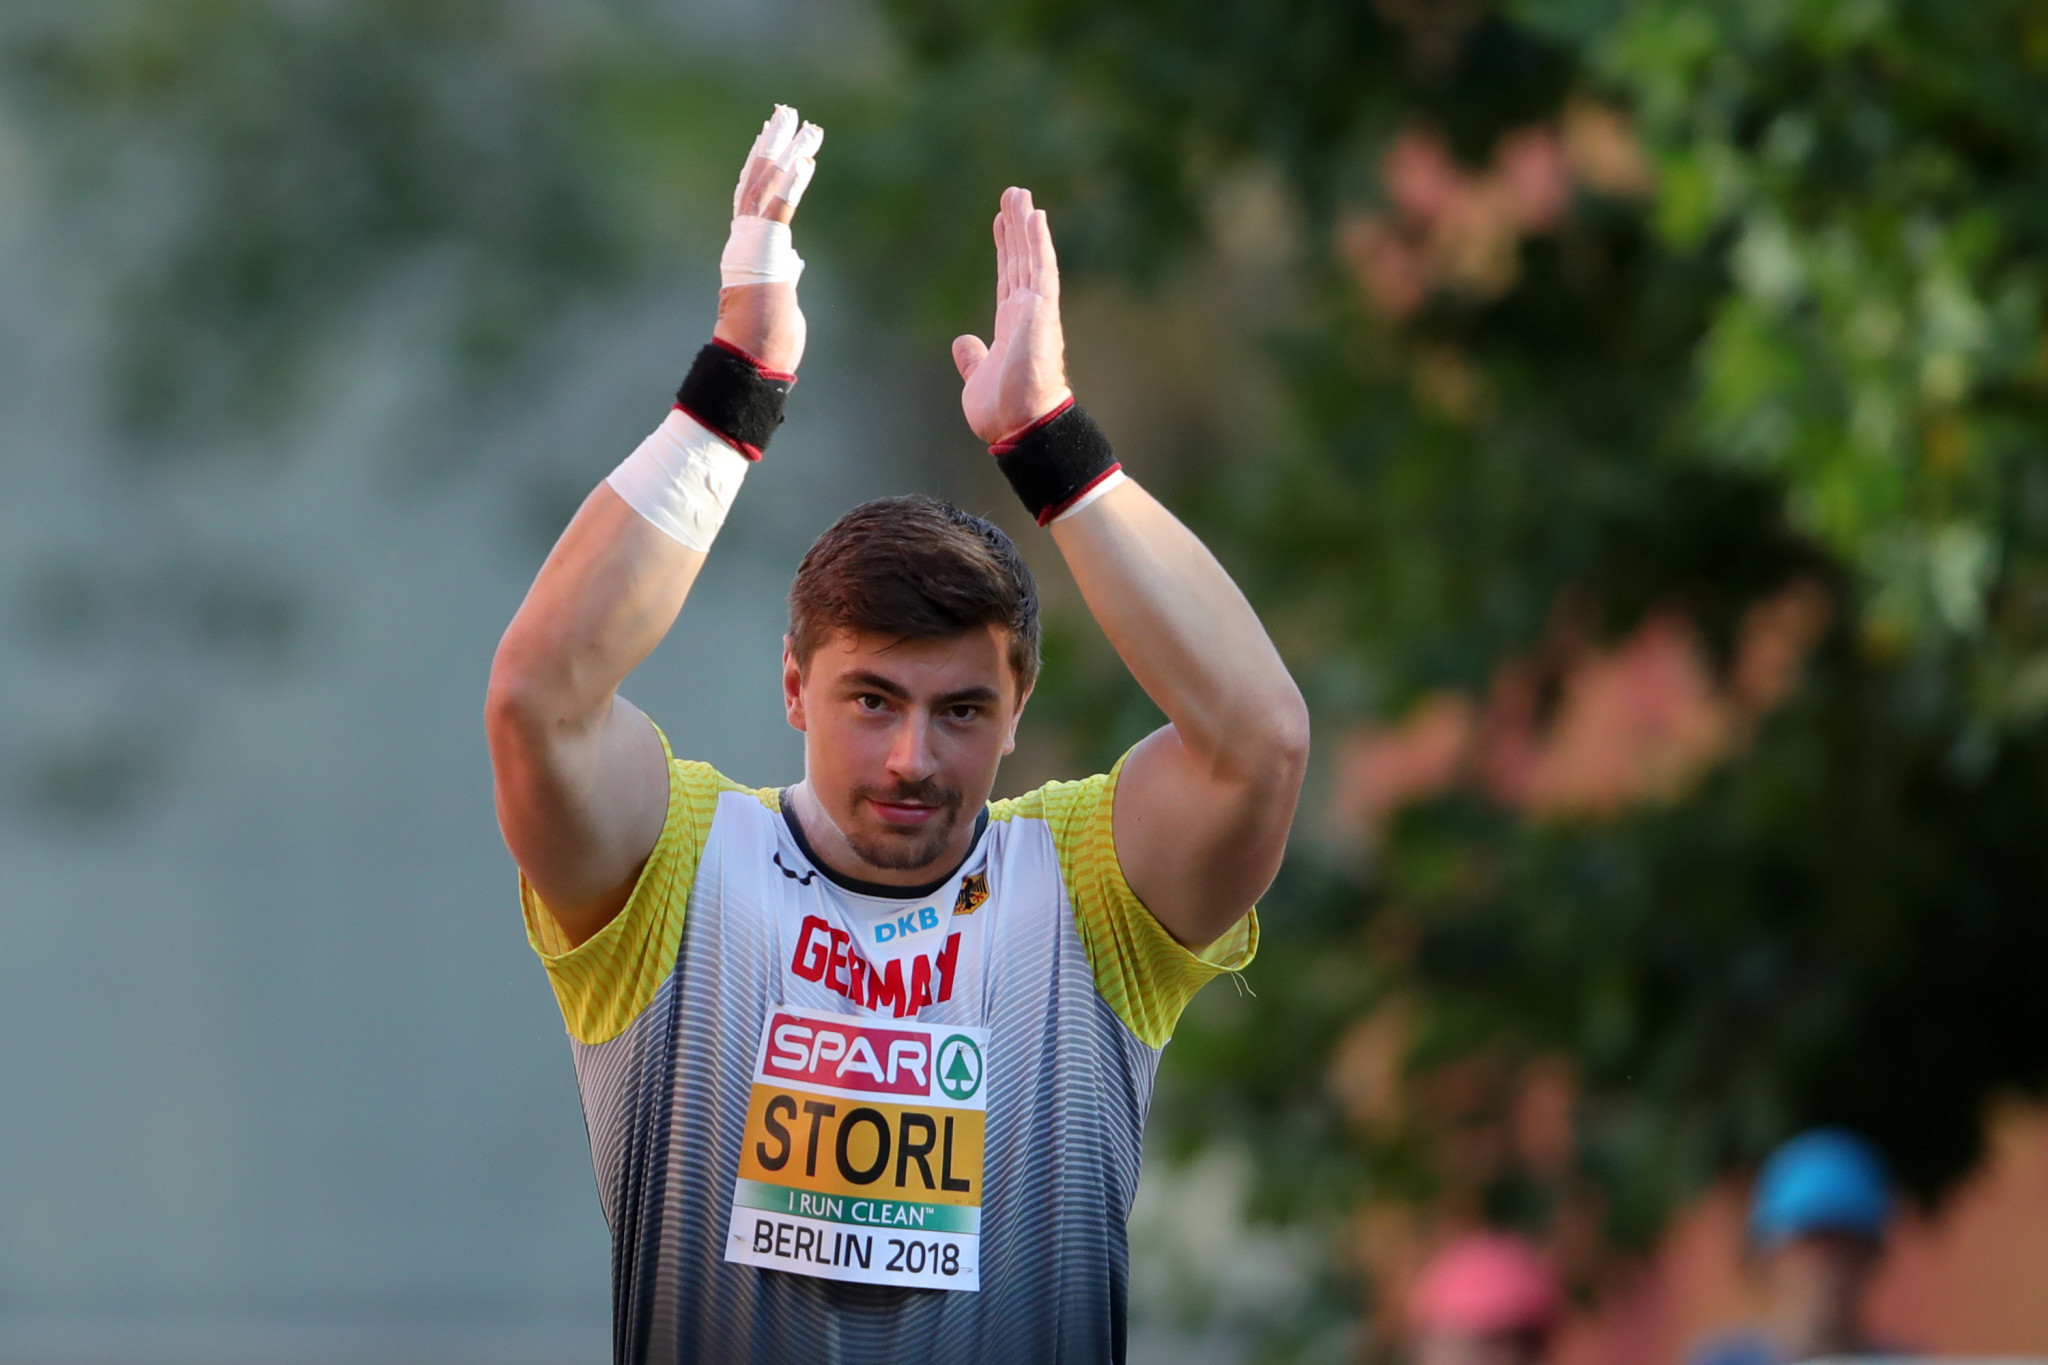 Storl rises to home expectations in European Mile showcase as he seeks fourth shot put title